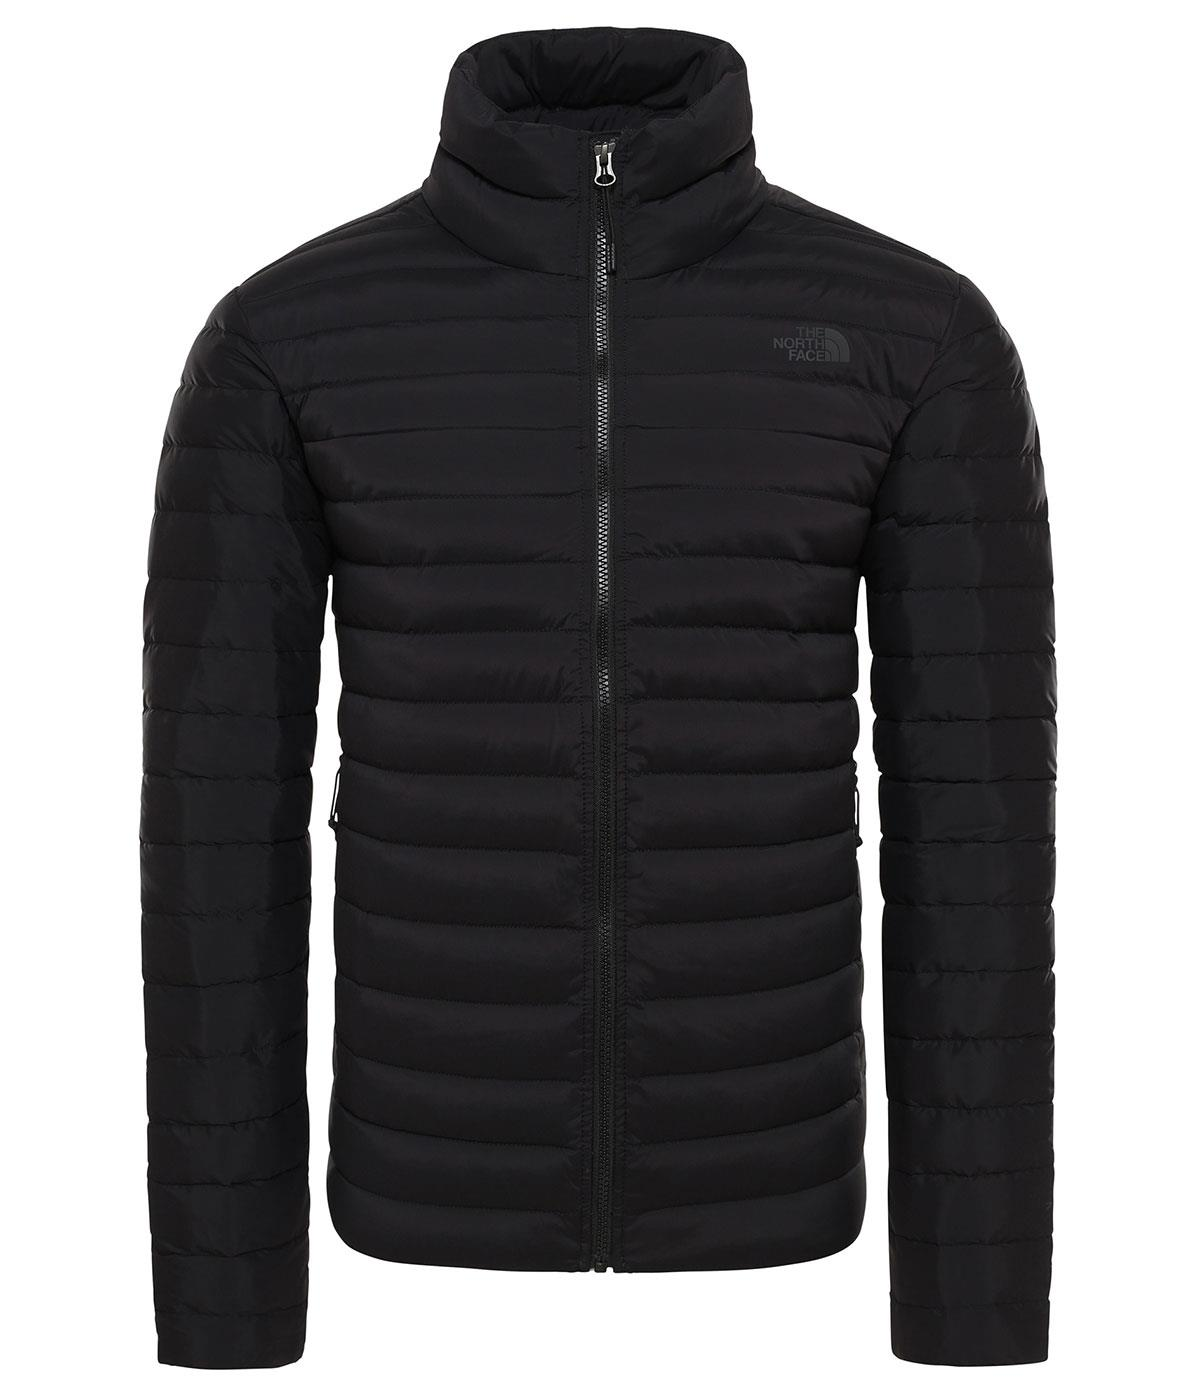 The North Face Erkek  Strch Dwn ceket nf0A3Y56Jk31